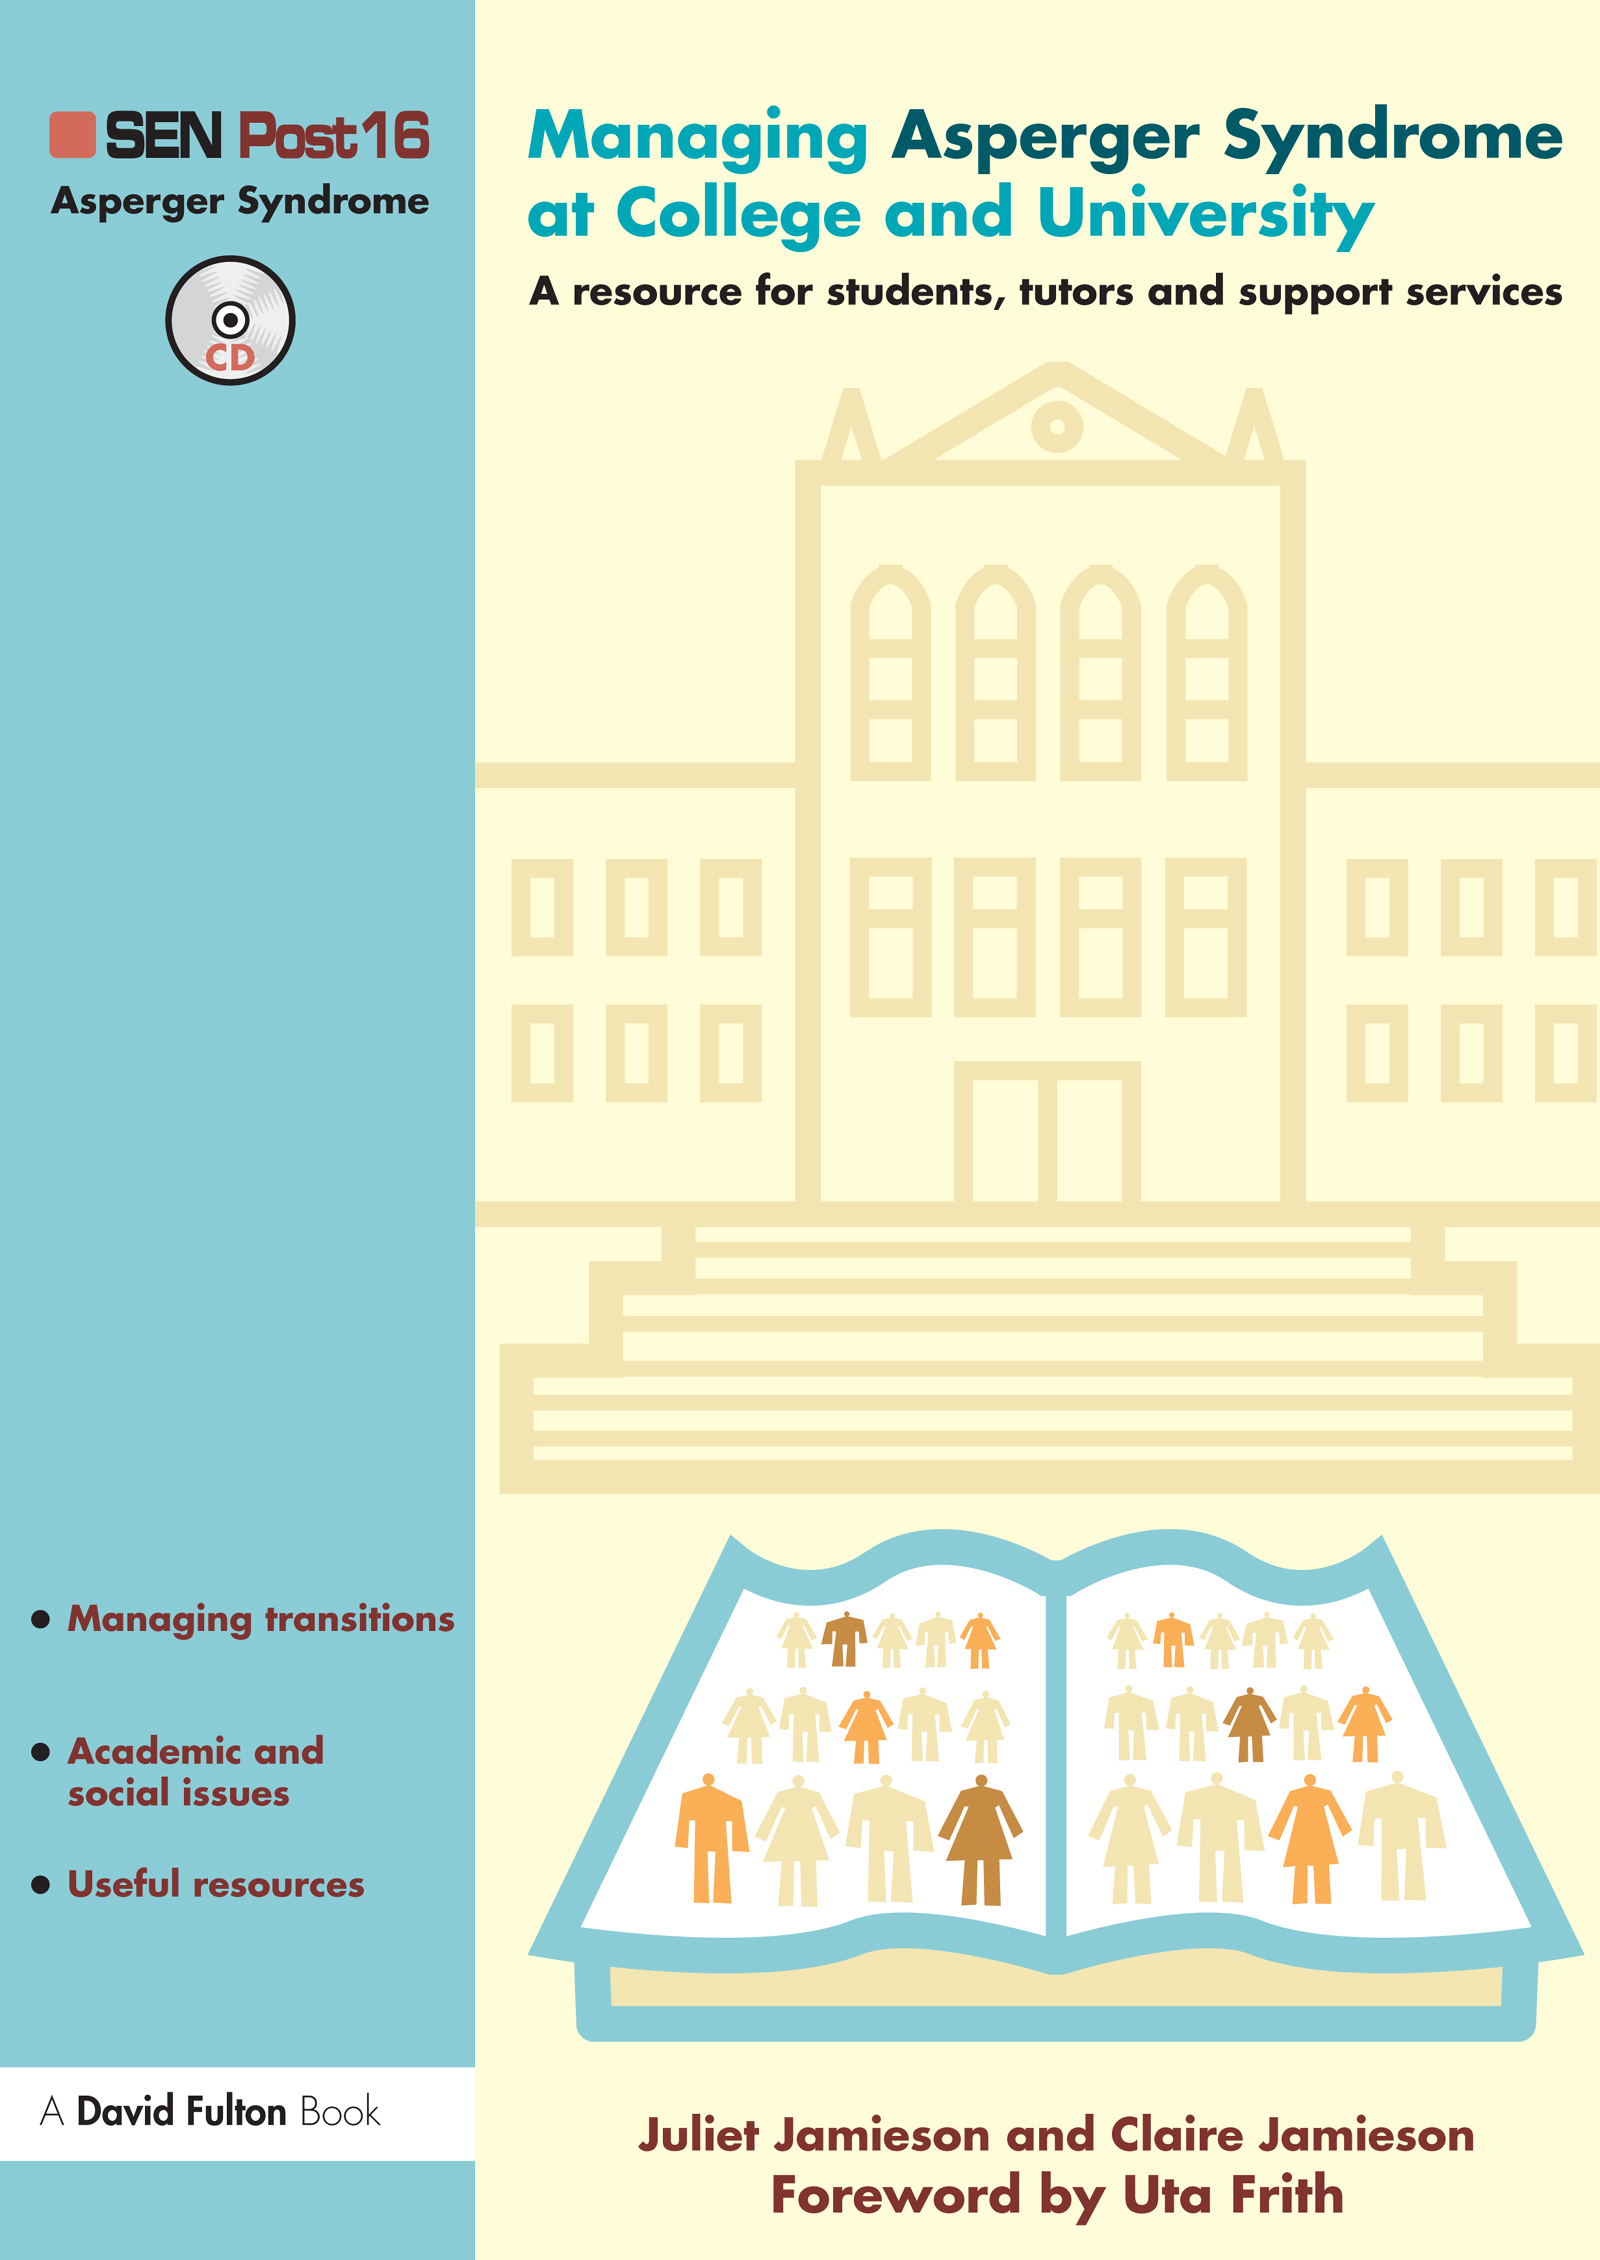 Managing Asperger Syndrome at College and University: A Resource for Students, Tutors and Support Services book cover